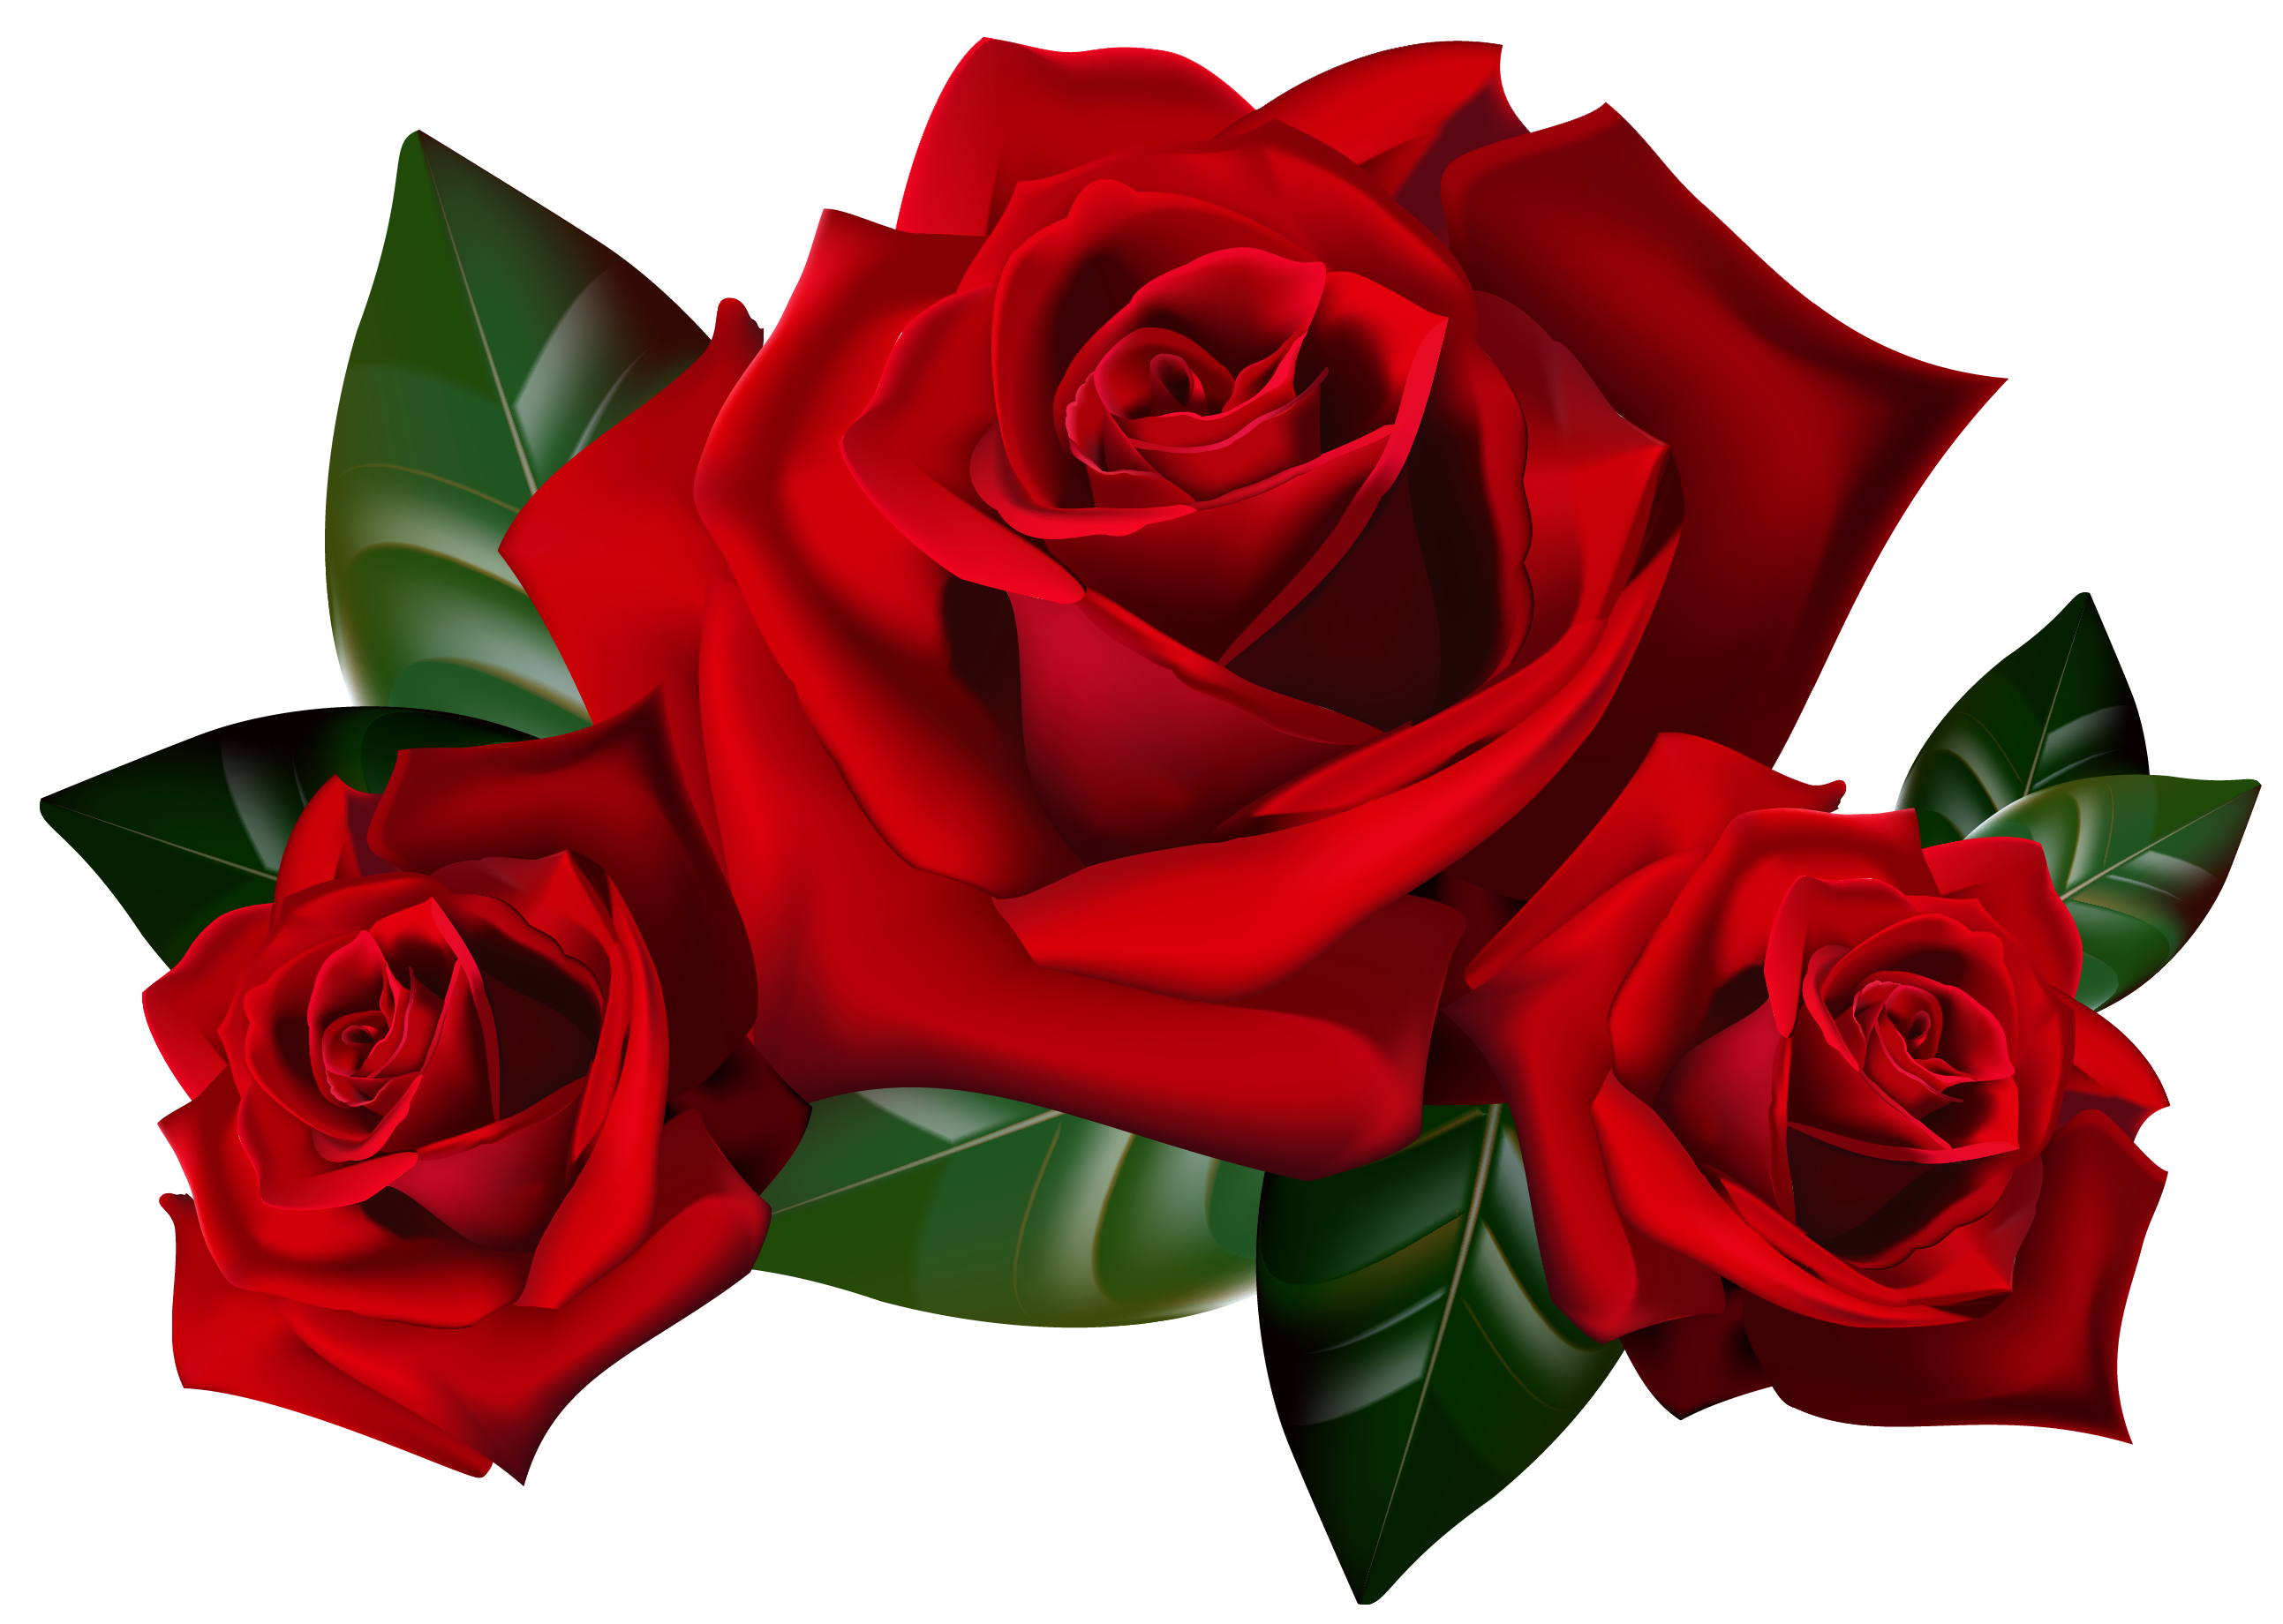 Red rose flower png. Roses clipart picture gallery